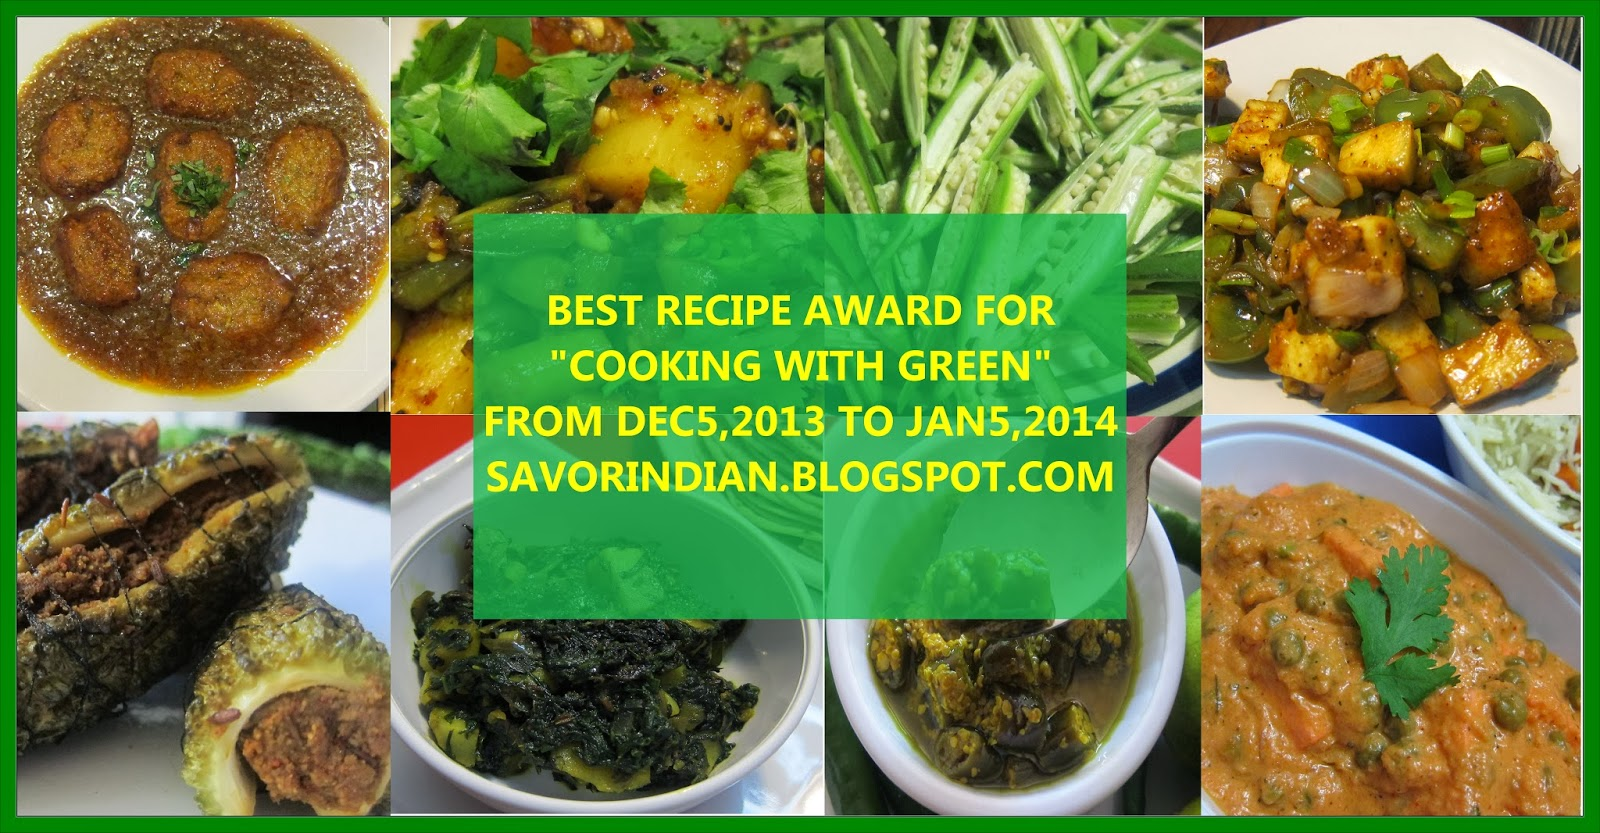 http://savorindian.blogspot.com/2014/01/cooking-with-green-winners-announcement.html?showComment=1389493226395#c8271570165696450481